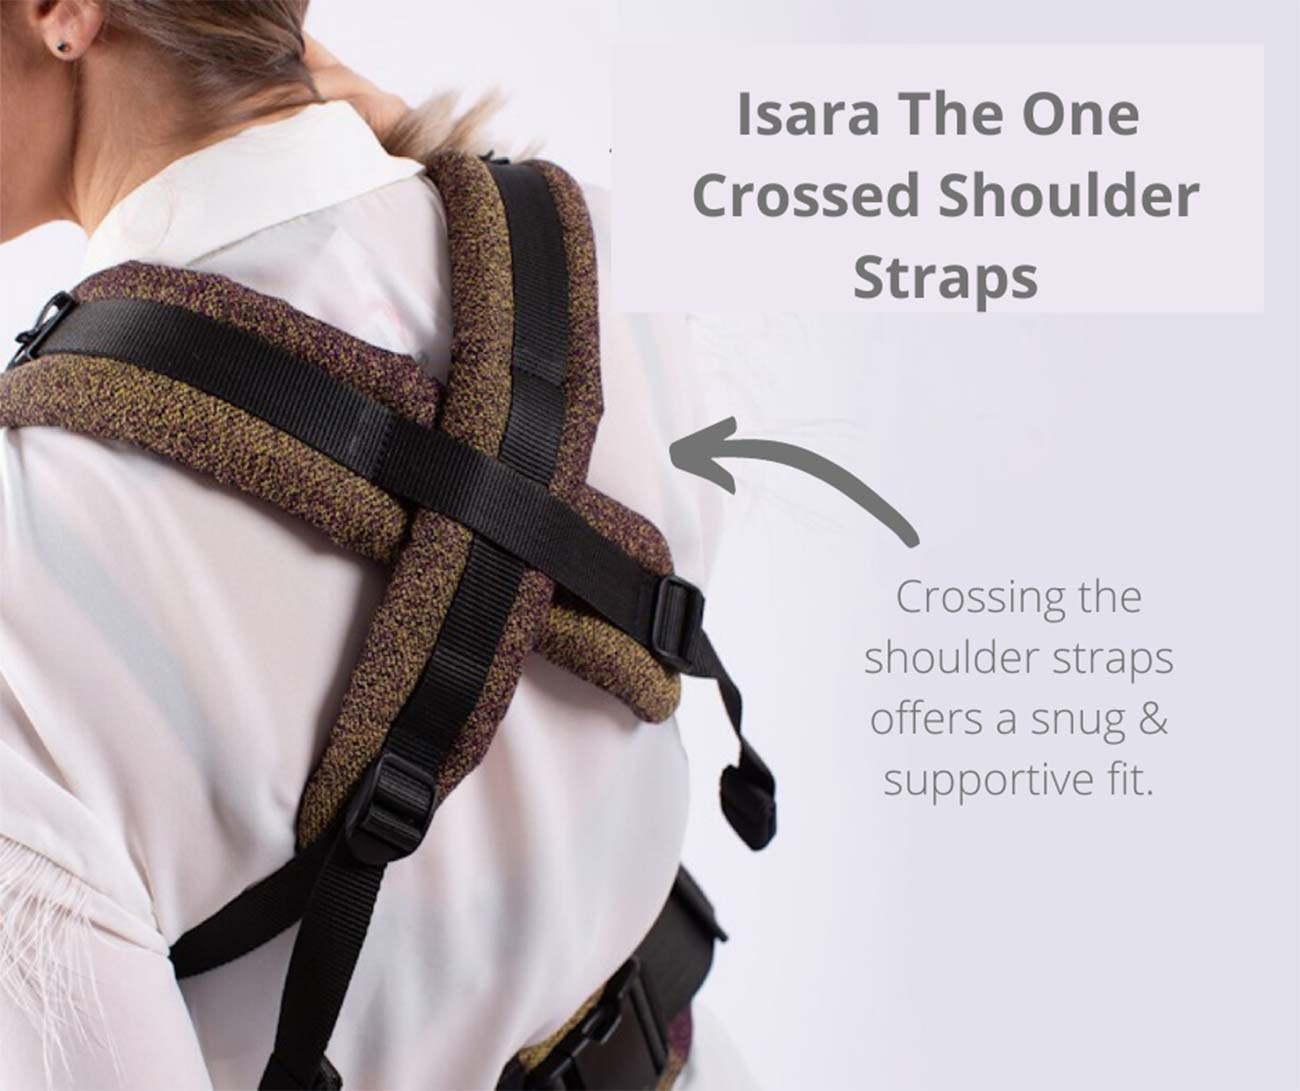 Isara The One Cross Shoulder Straps